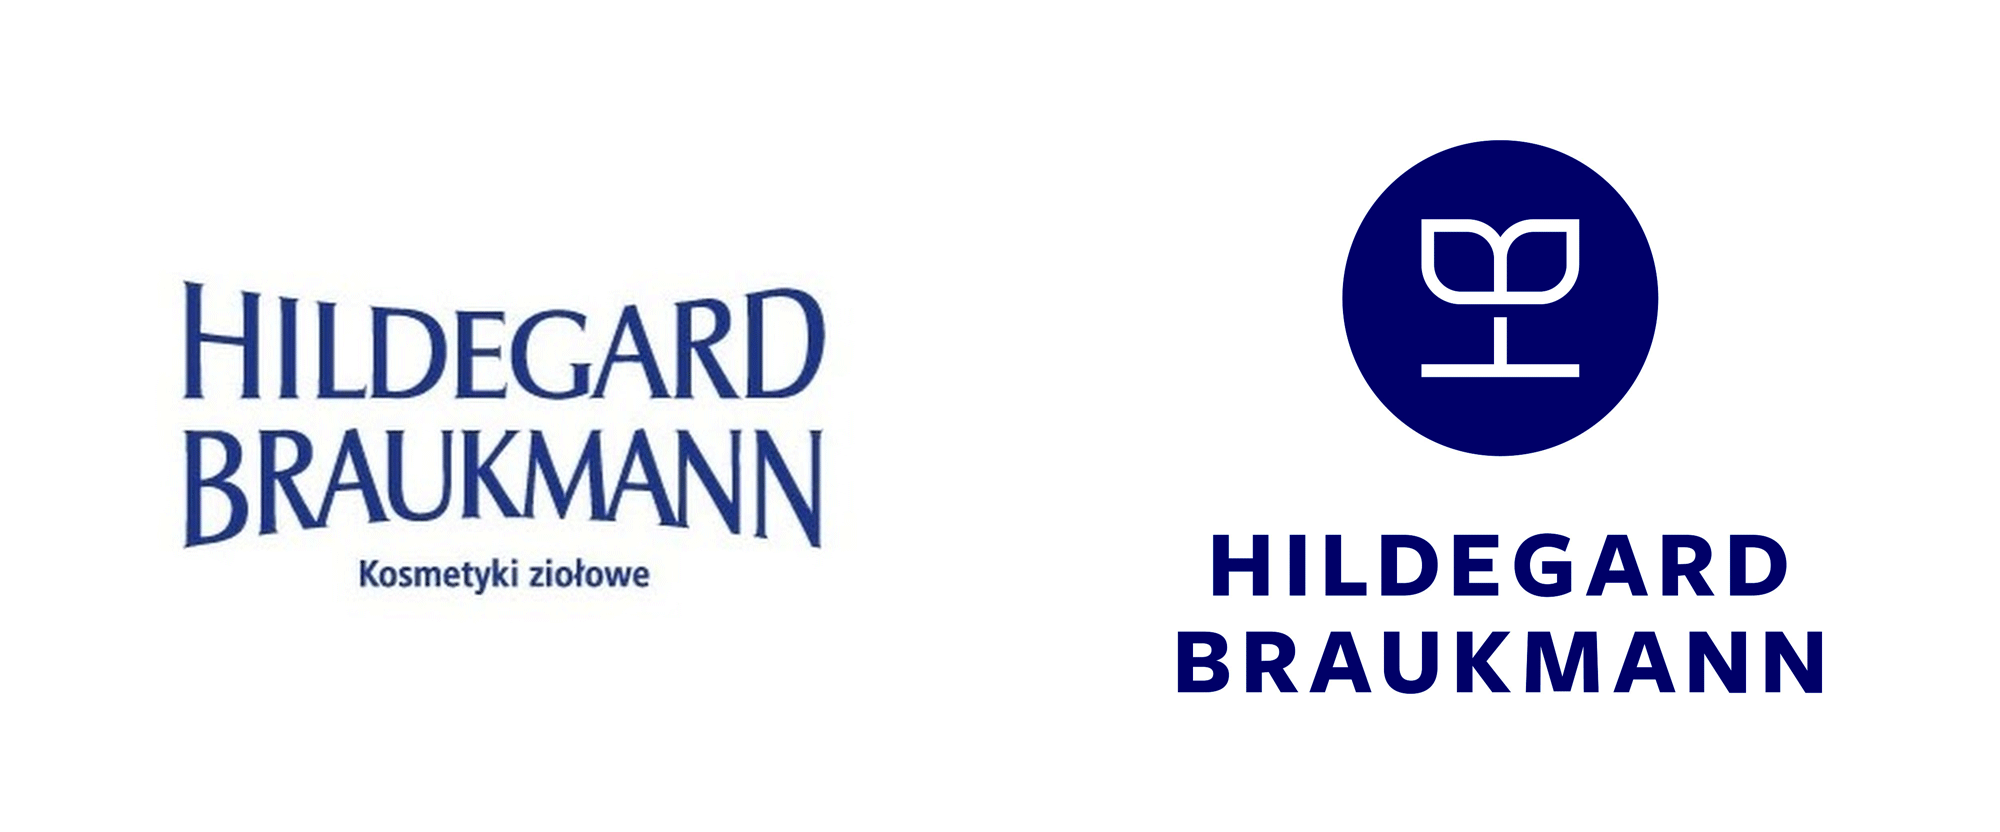 New Logo and Identity for Hildegard Braukmann by wir Design